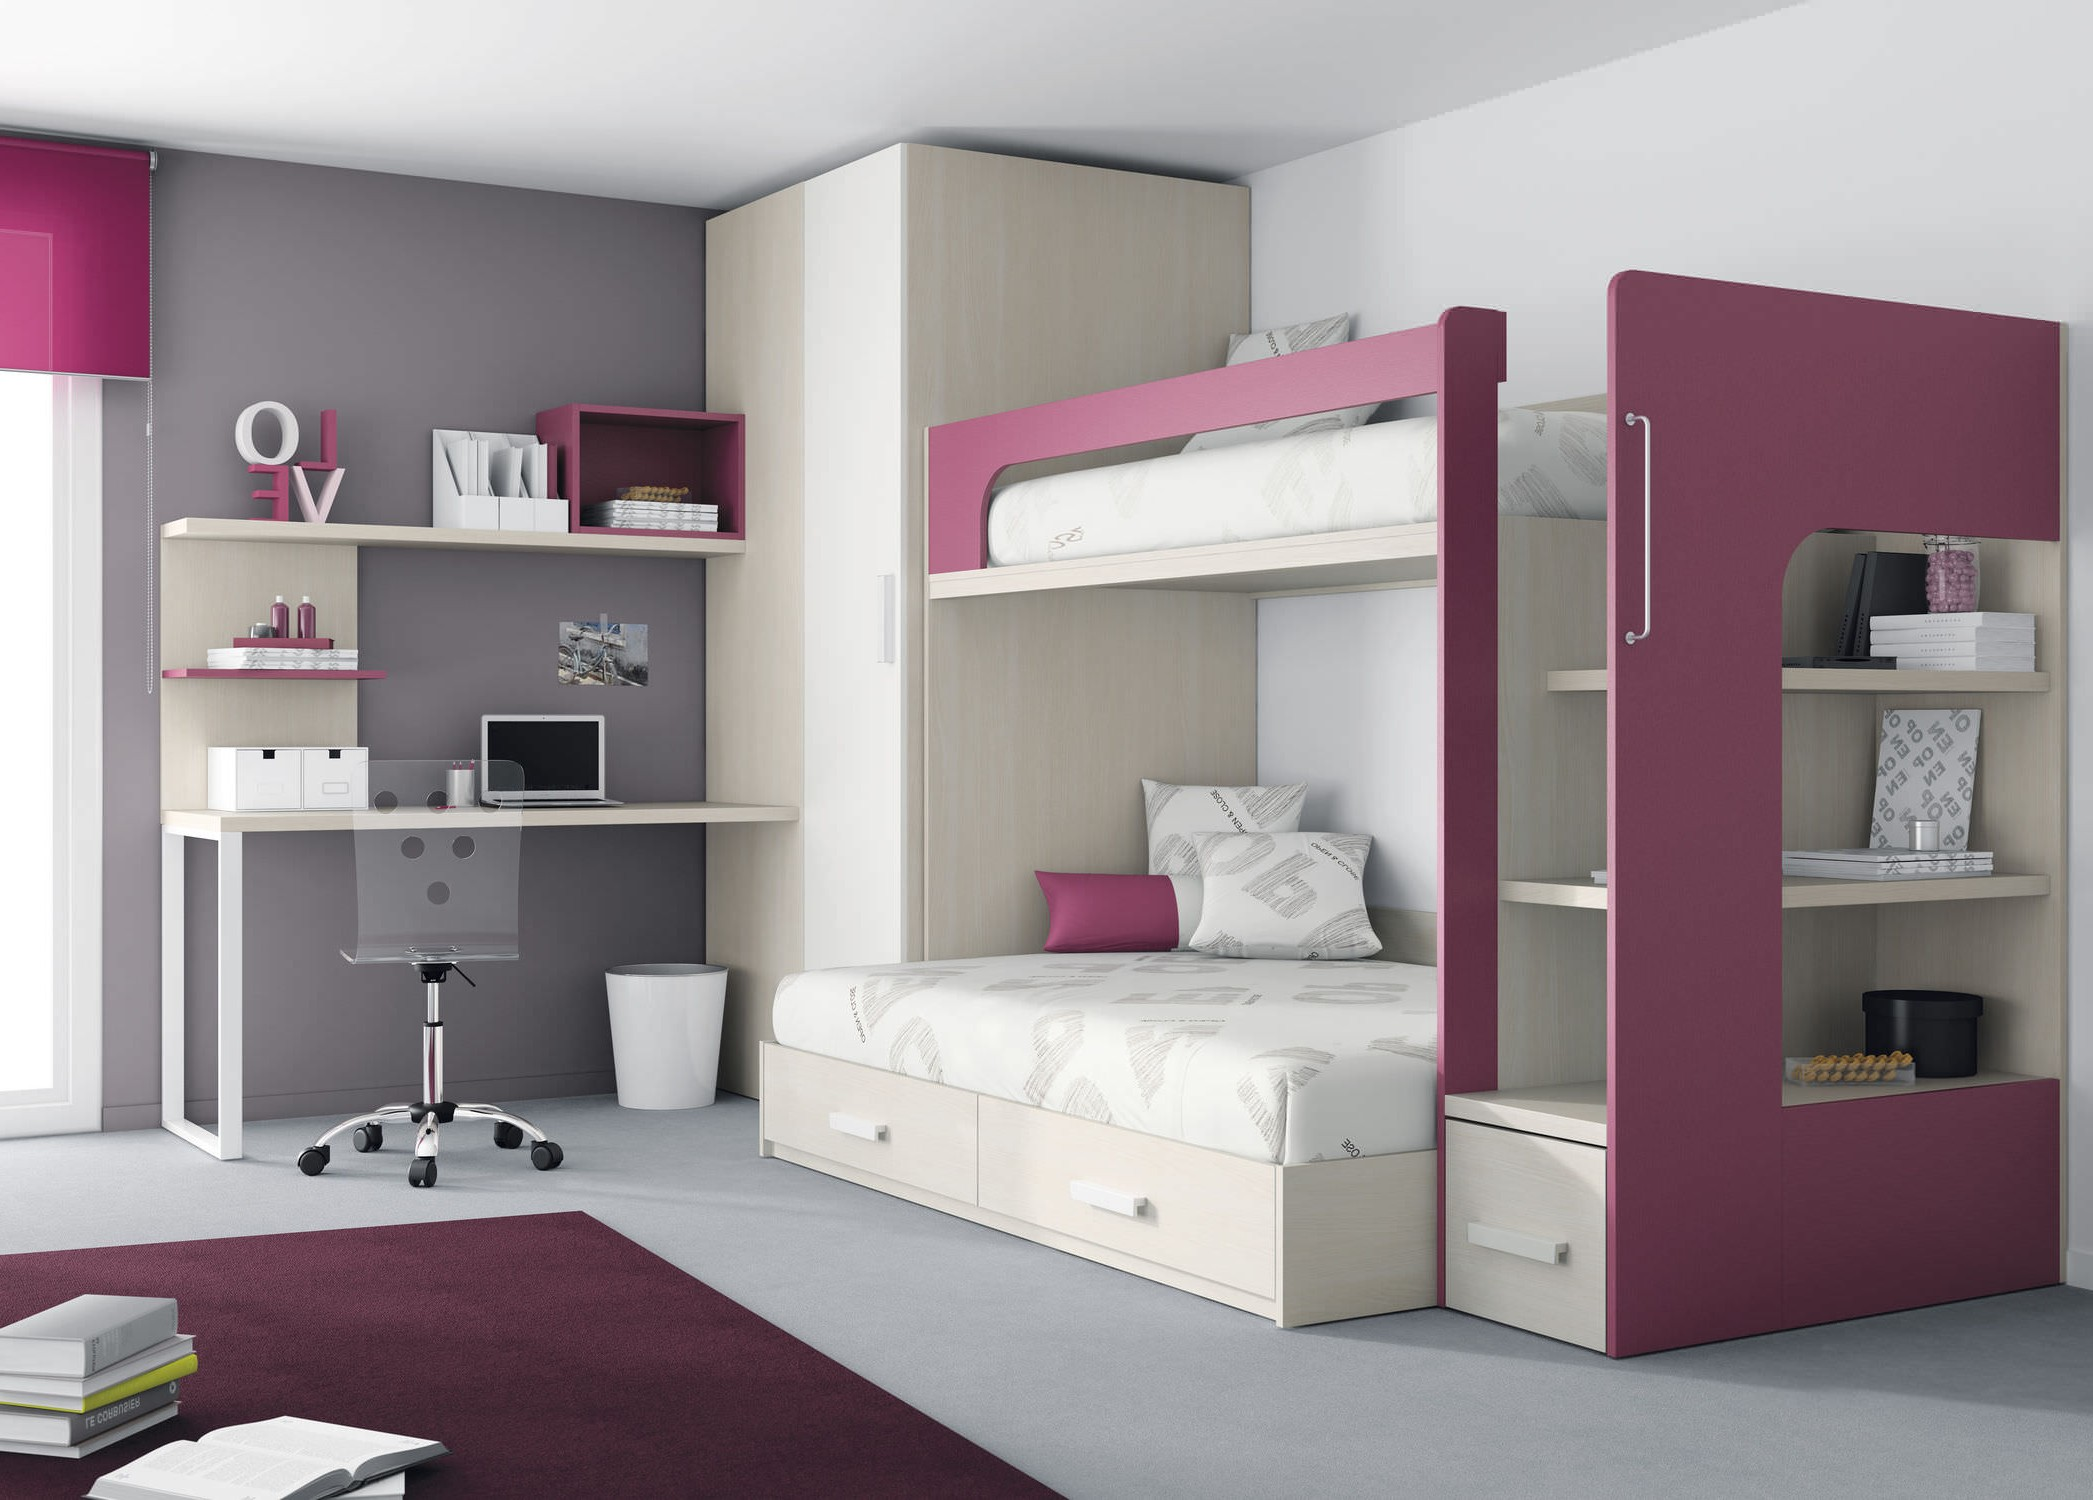 chambre mixte pour garcon et fille chambre id es de. Black Bedroom Furniture Sets. Home Design Ideas